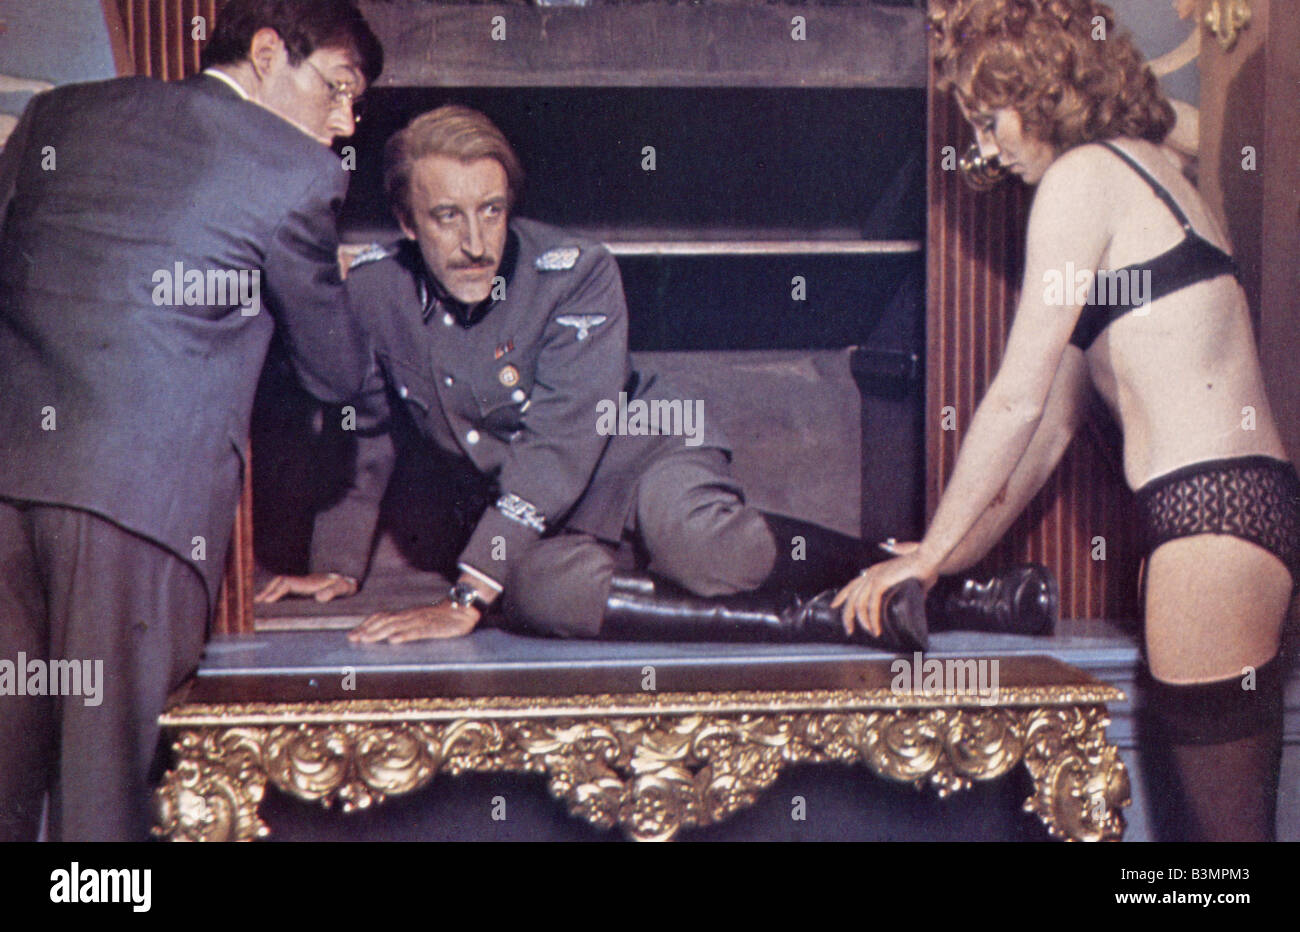 SOFT BEDS, HARD BATTLES 1973 Rank film aka Undercovers Hero with Peter Sellers - Stock Image